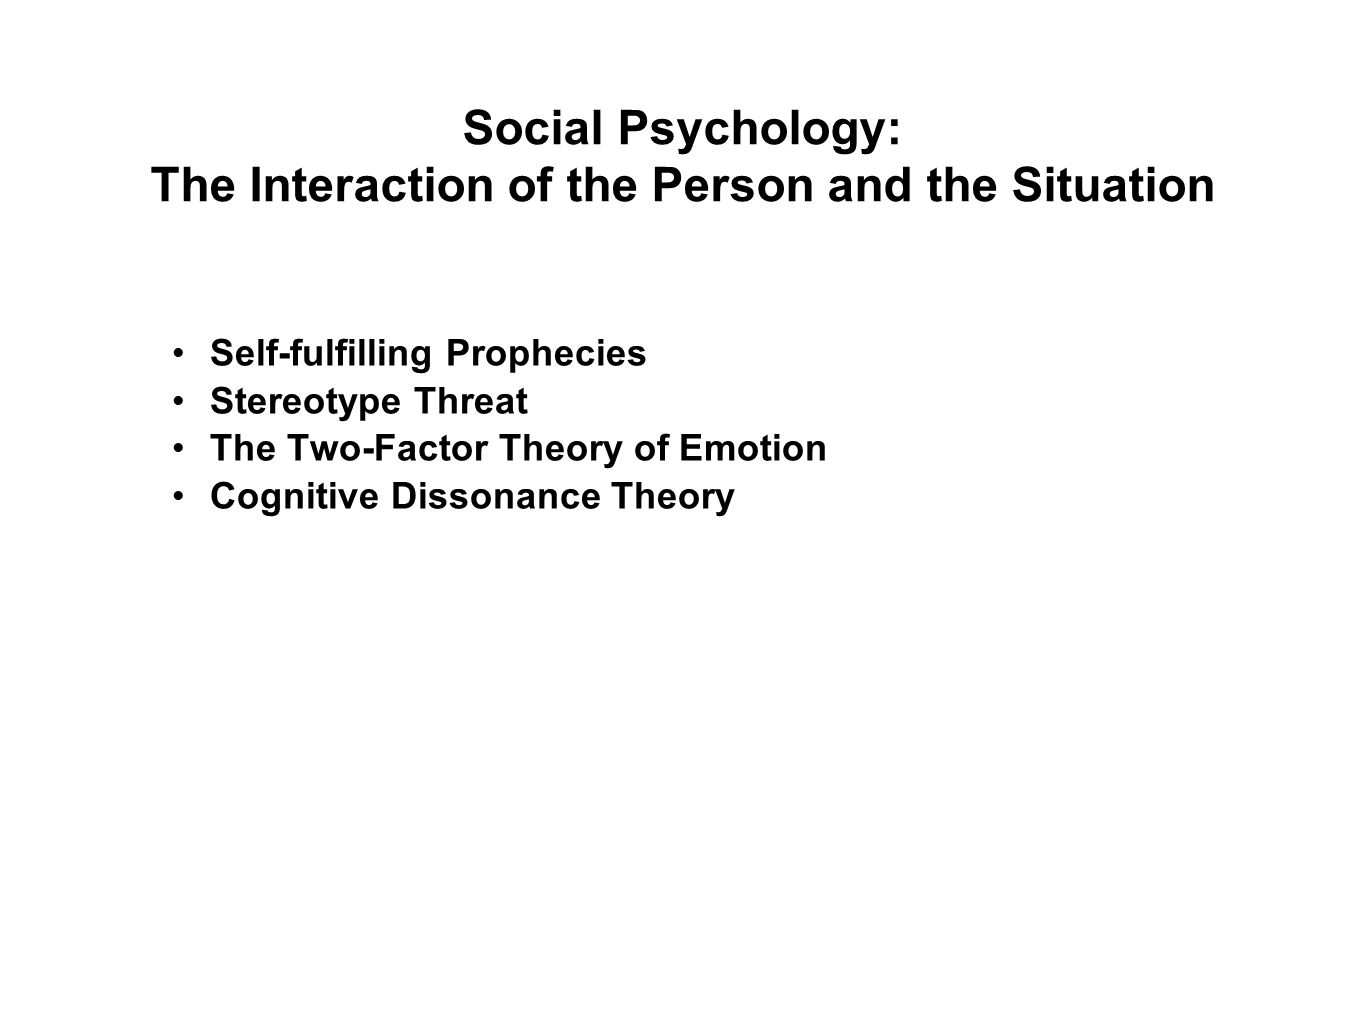 Social Psychology: The Interaction of the Person and the Situation Self-fulfilling Prophecies Stereotype Threat The Two-Factor Theory of Emotion Cognitive Dissonance Theory